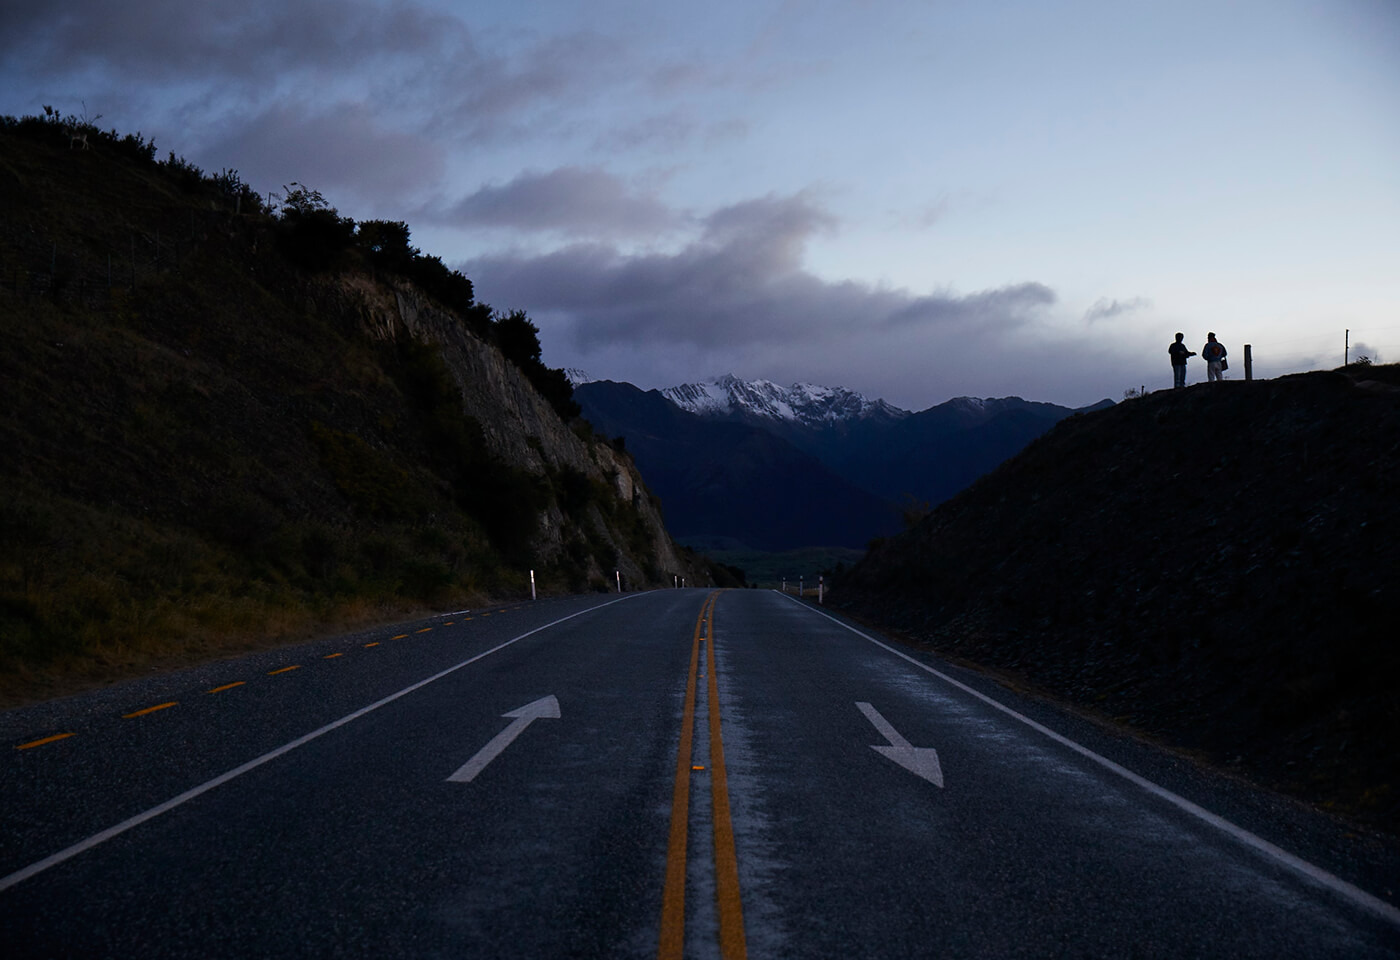 Landscape image of road and mountains in Wanaka